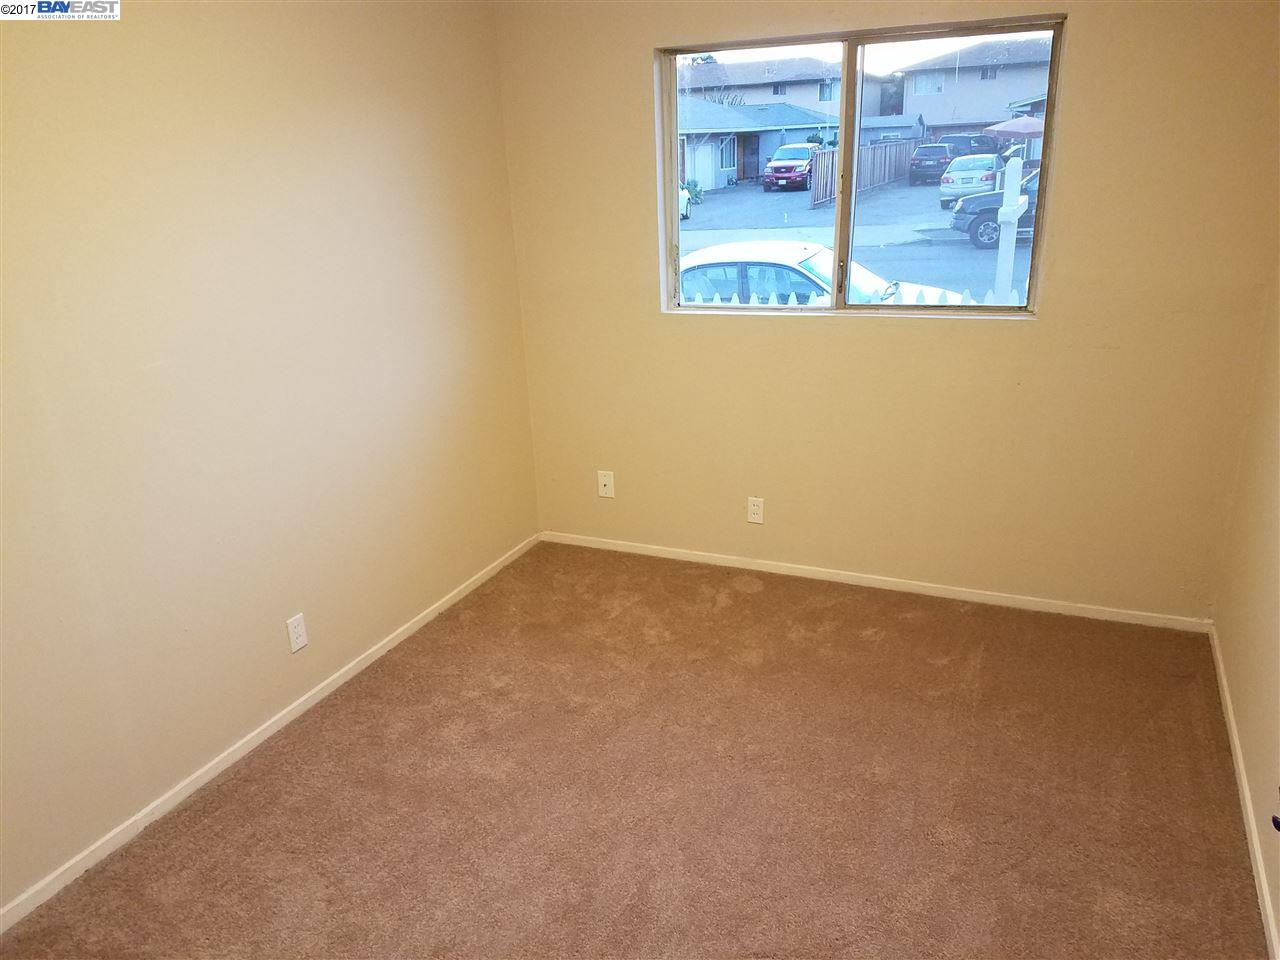 Additional photo for property listing at 26730 Tyrrell Avenue 26730 Tyrrell Avenue Hayward, カリフォルニア 94544 アメリカ合衆国